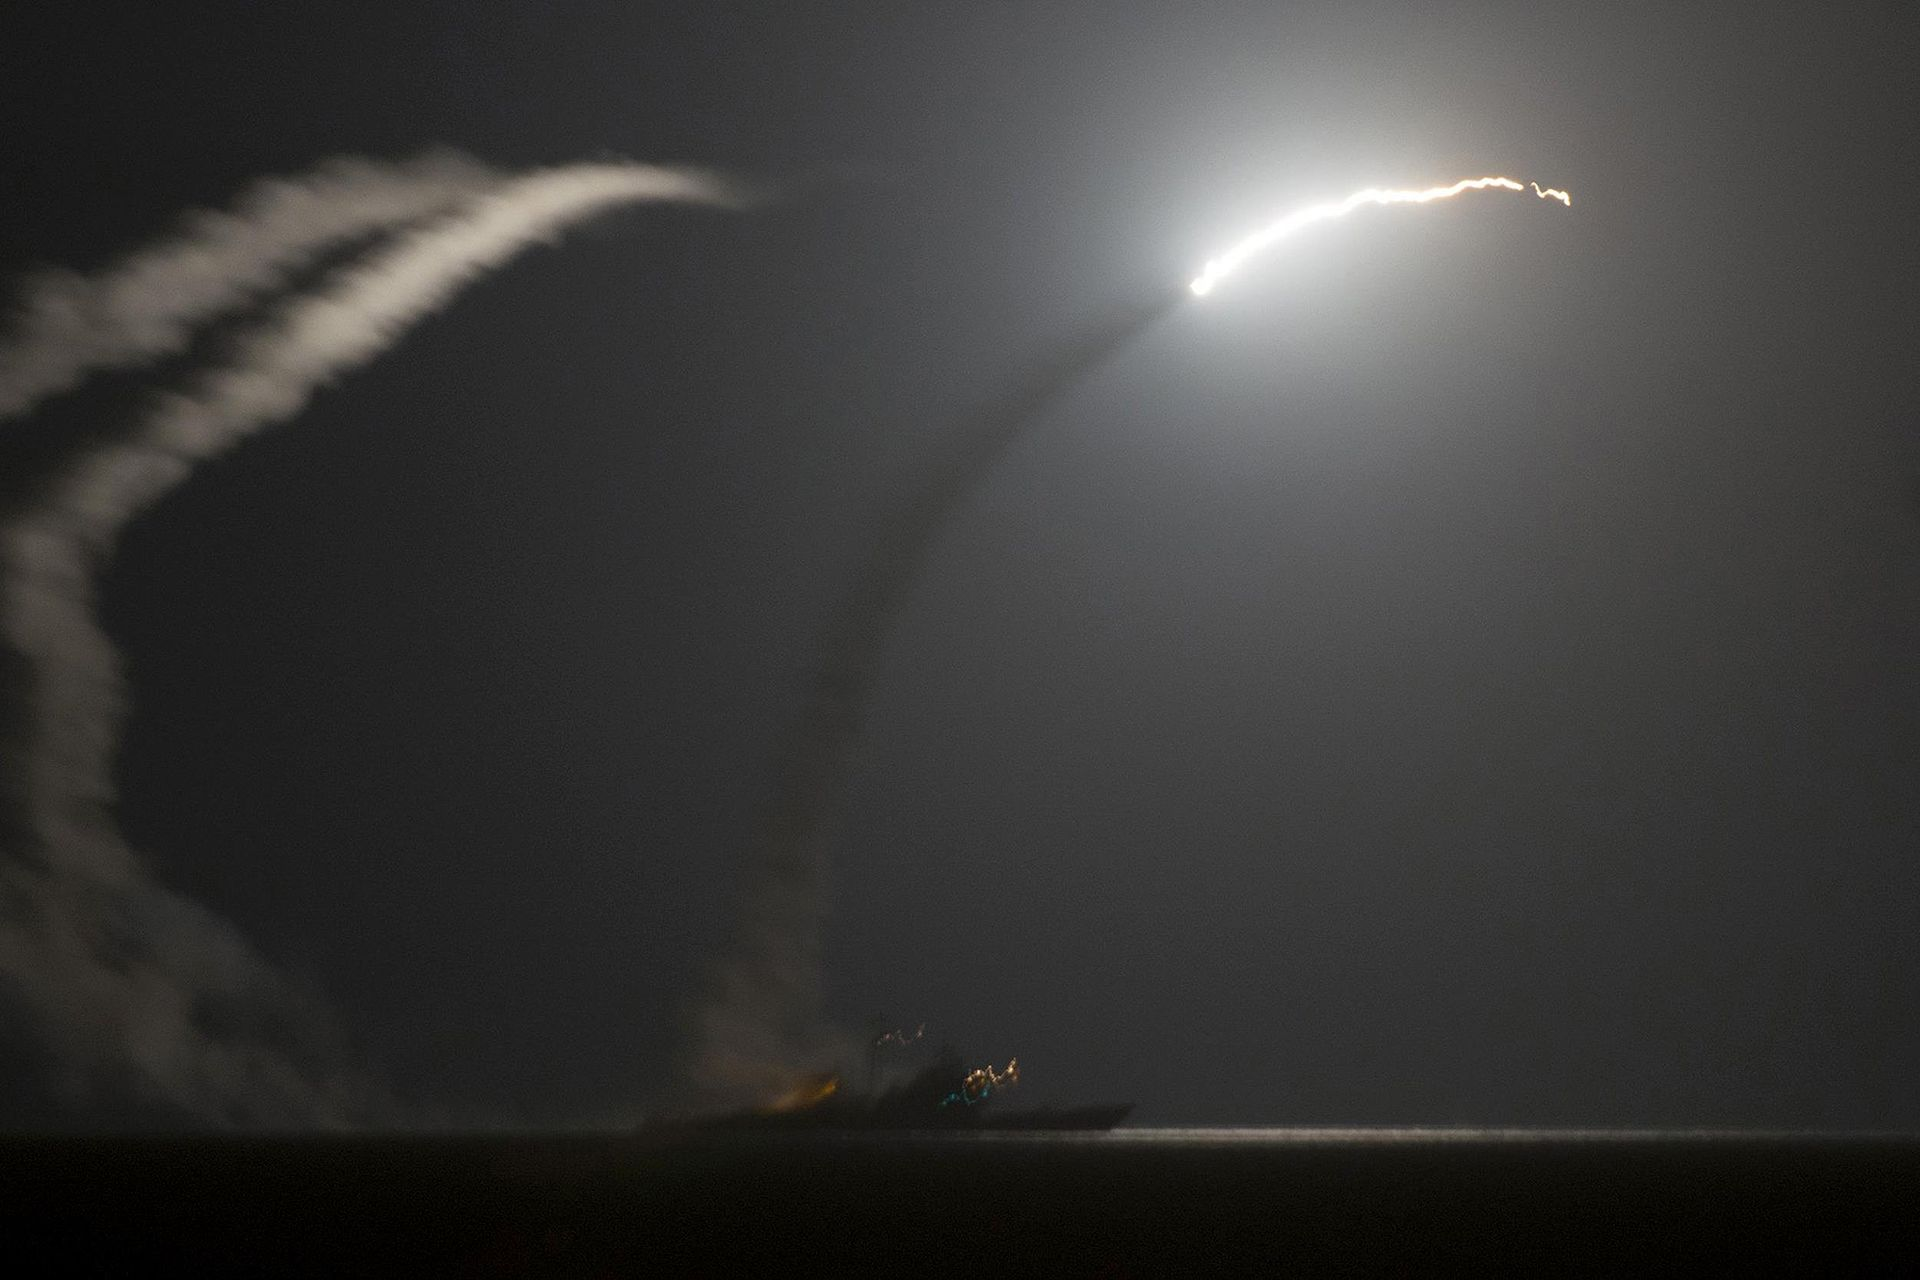 Tomahawk_Missile_fired_from_US_Destroyers.jpg